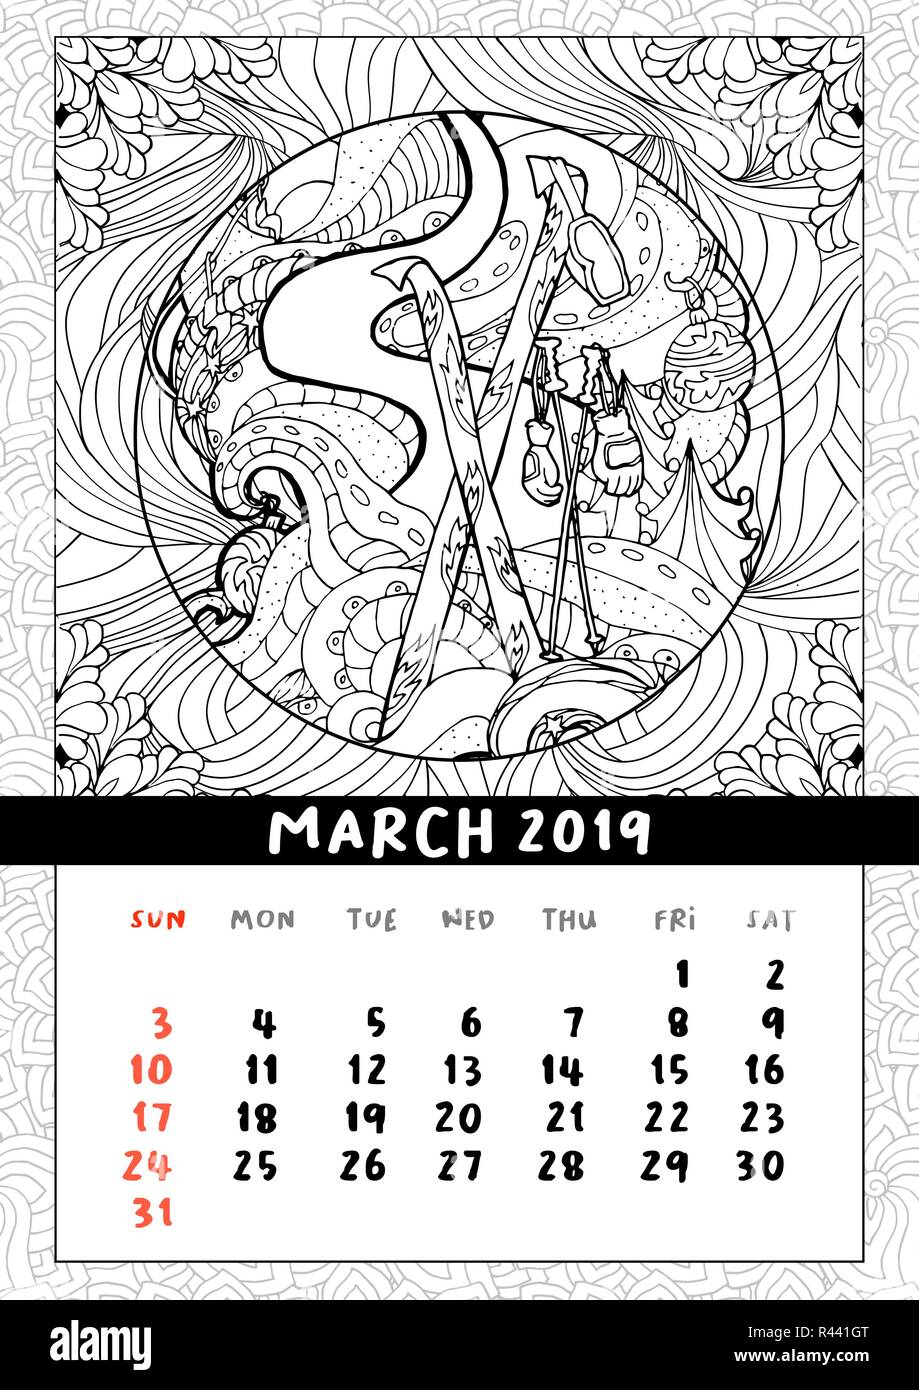 Creative Haven Winter Scenes Coloring Book (Adult Coloring): Marty ... | 1390x919